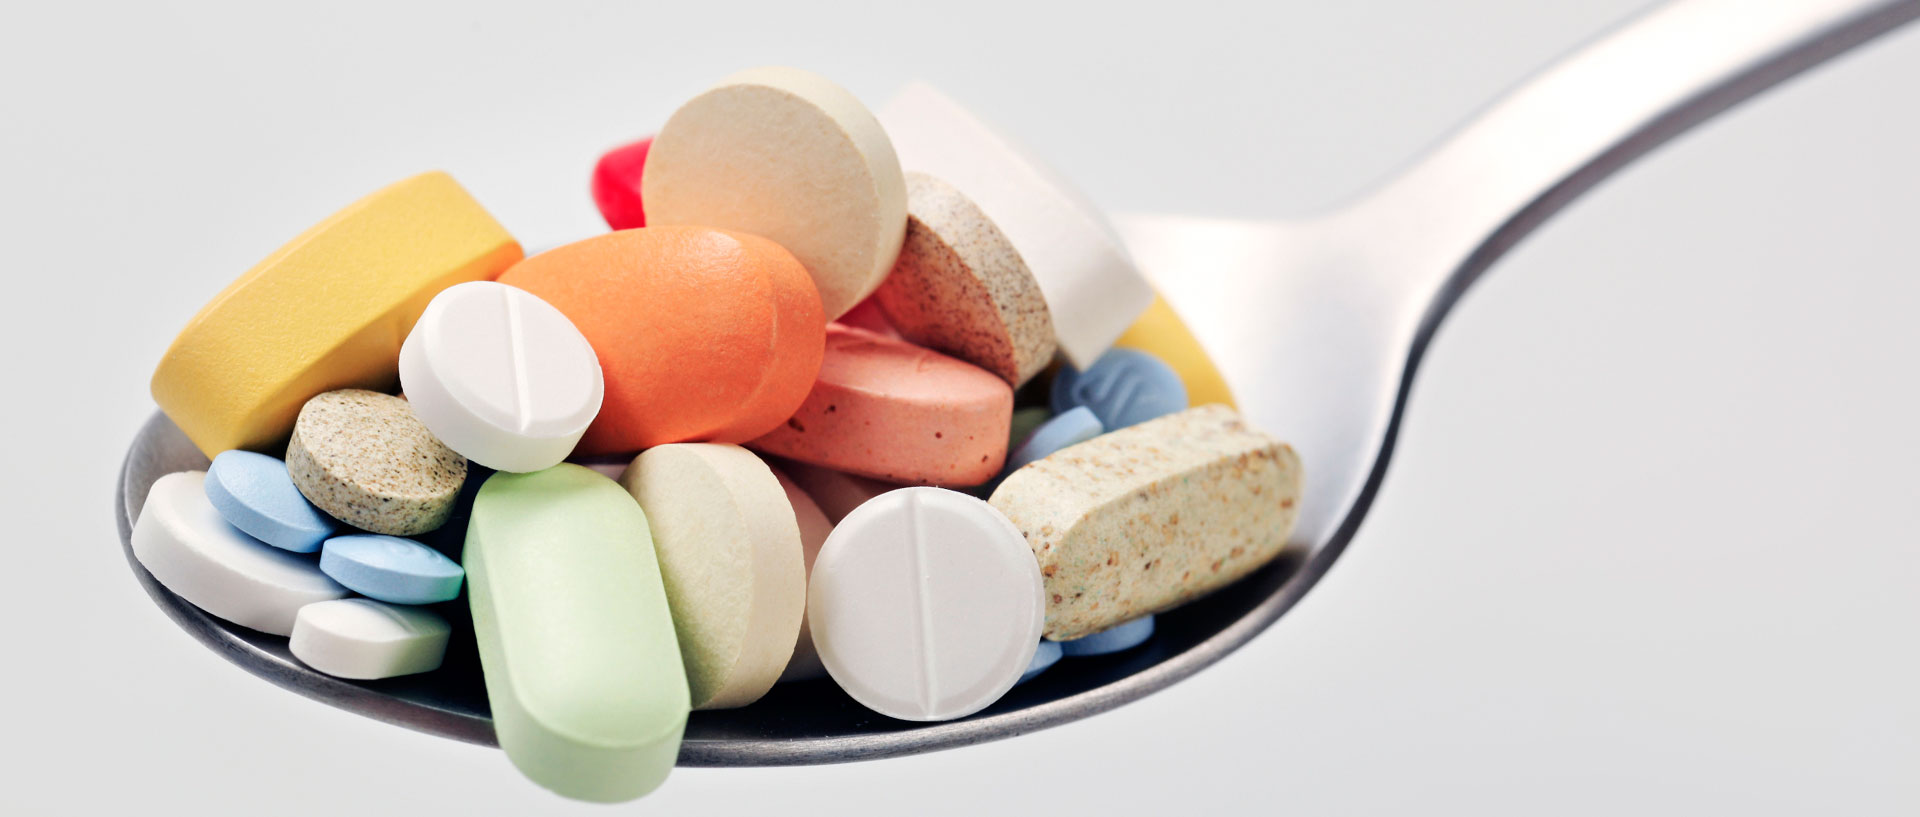 Supplements and Drug Interactions - Consumer Reports